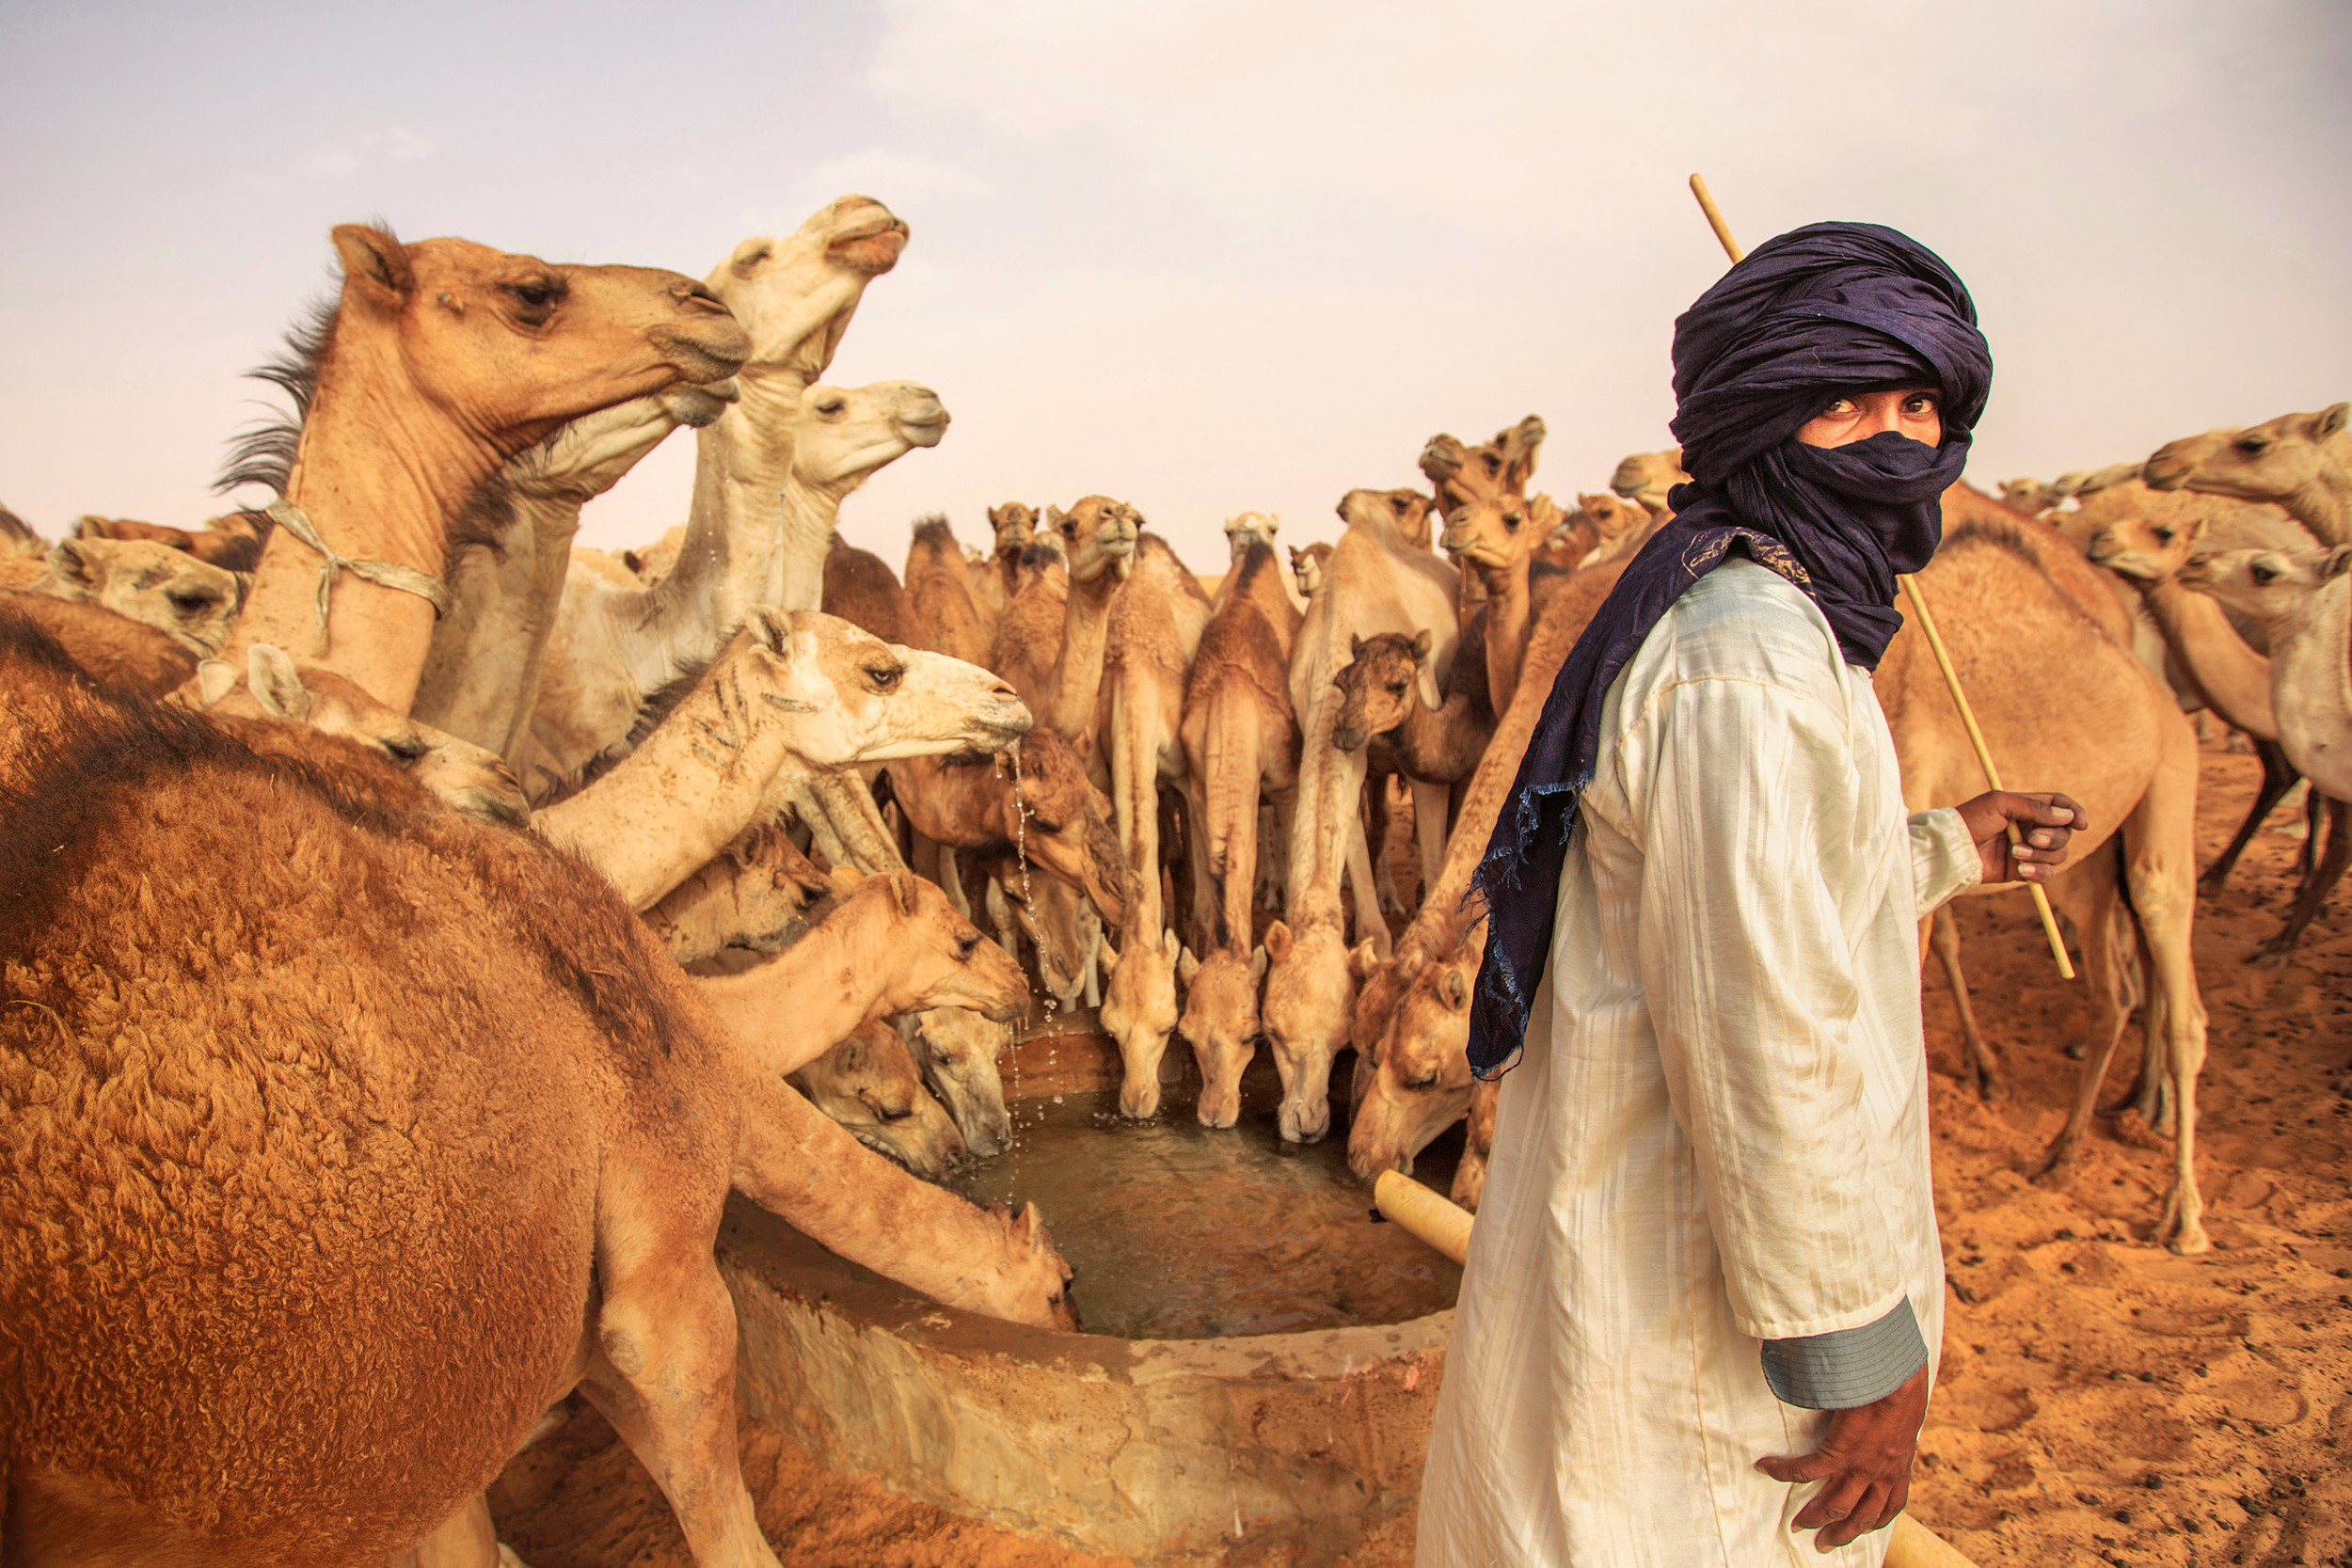 Camel man with his camels in Mauritania